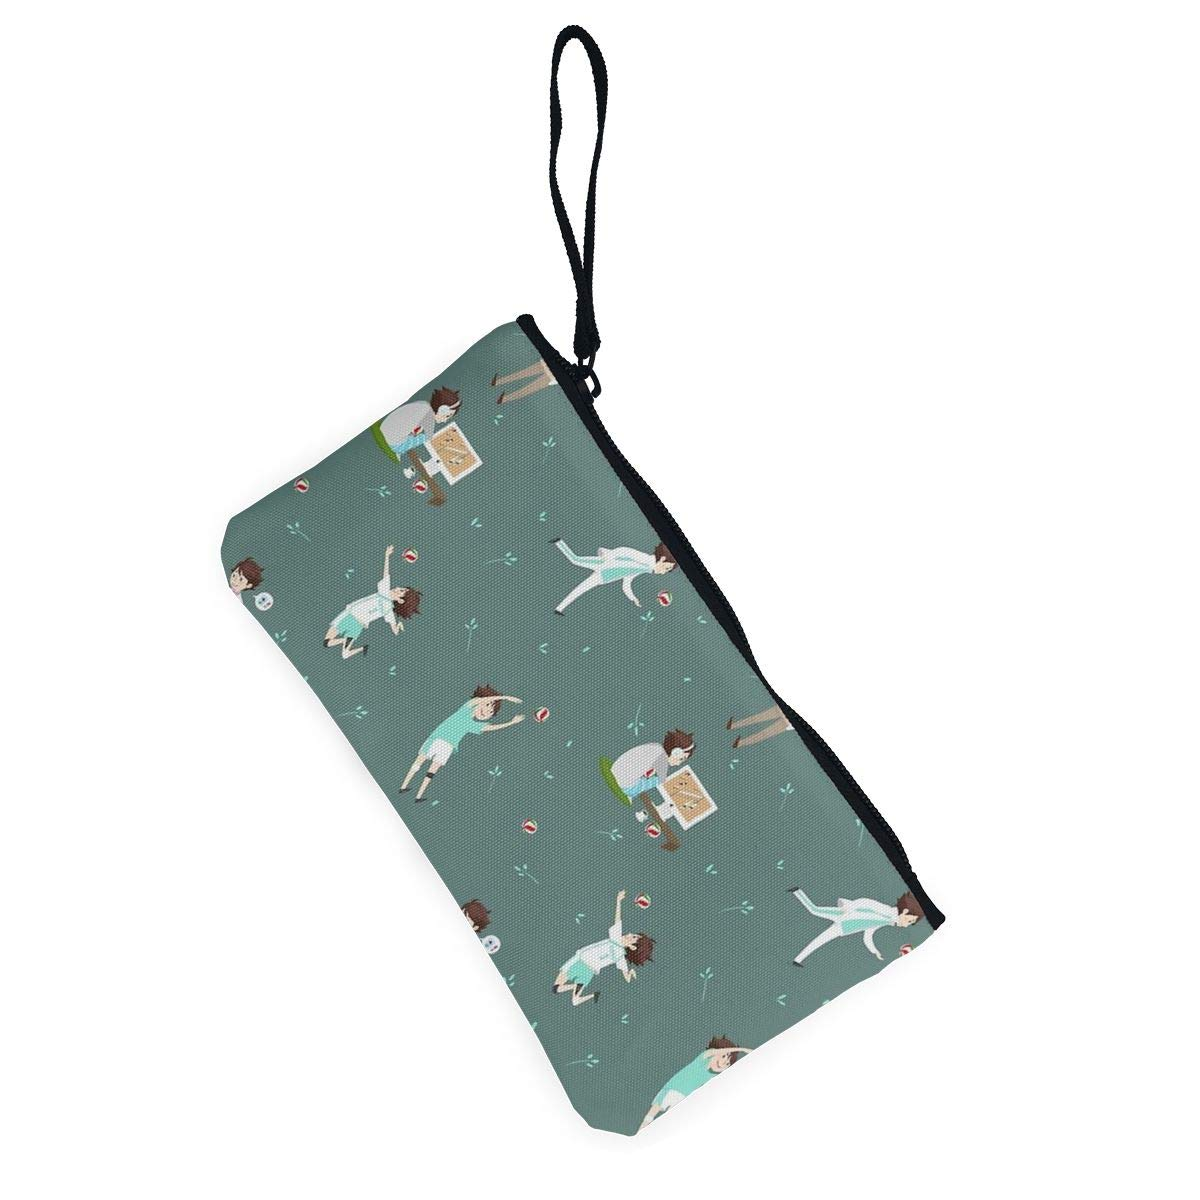 Green Cute Looking Coin Purse Small and Exquisite Going Out to Carry Purse Yamini Oikawa Tooru Pattern